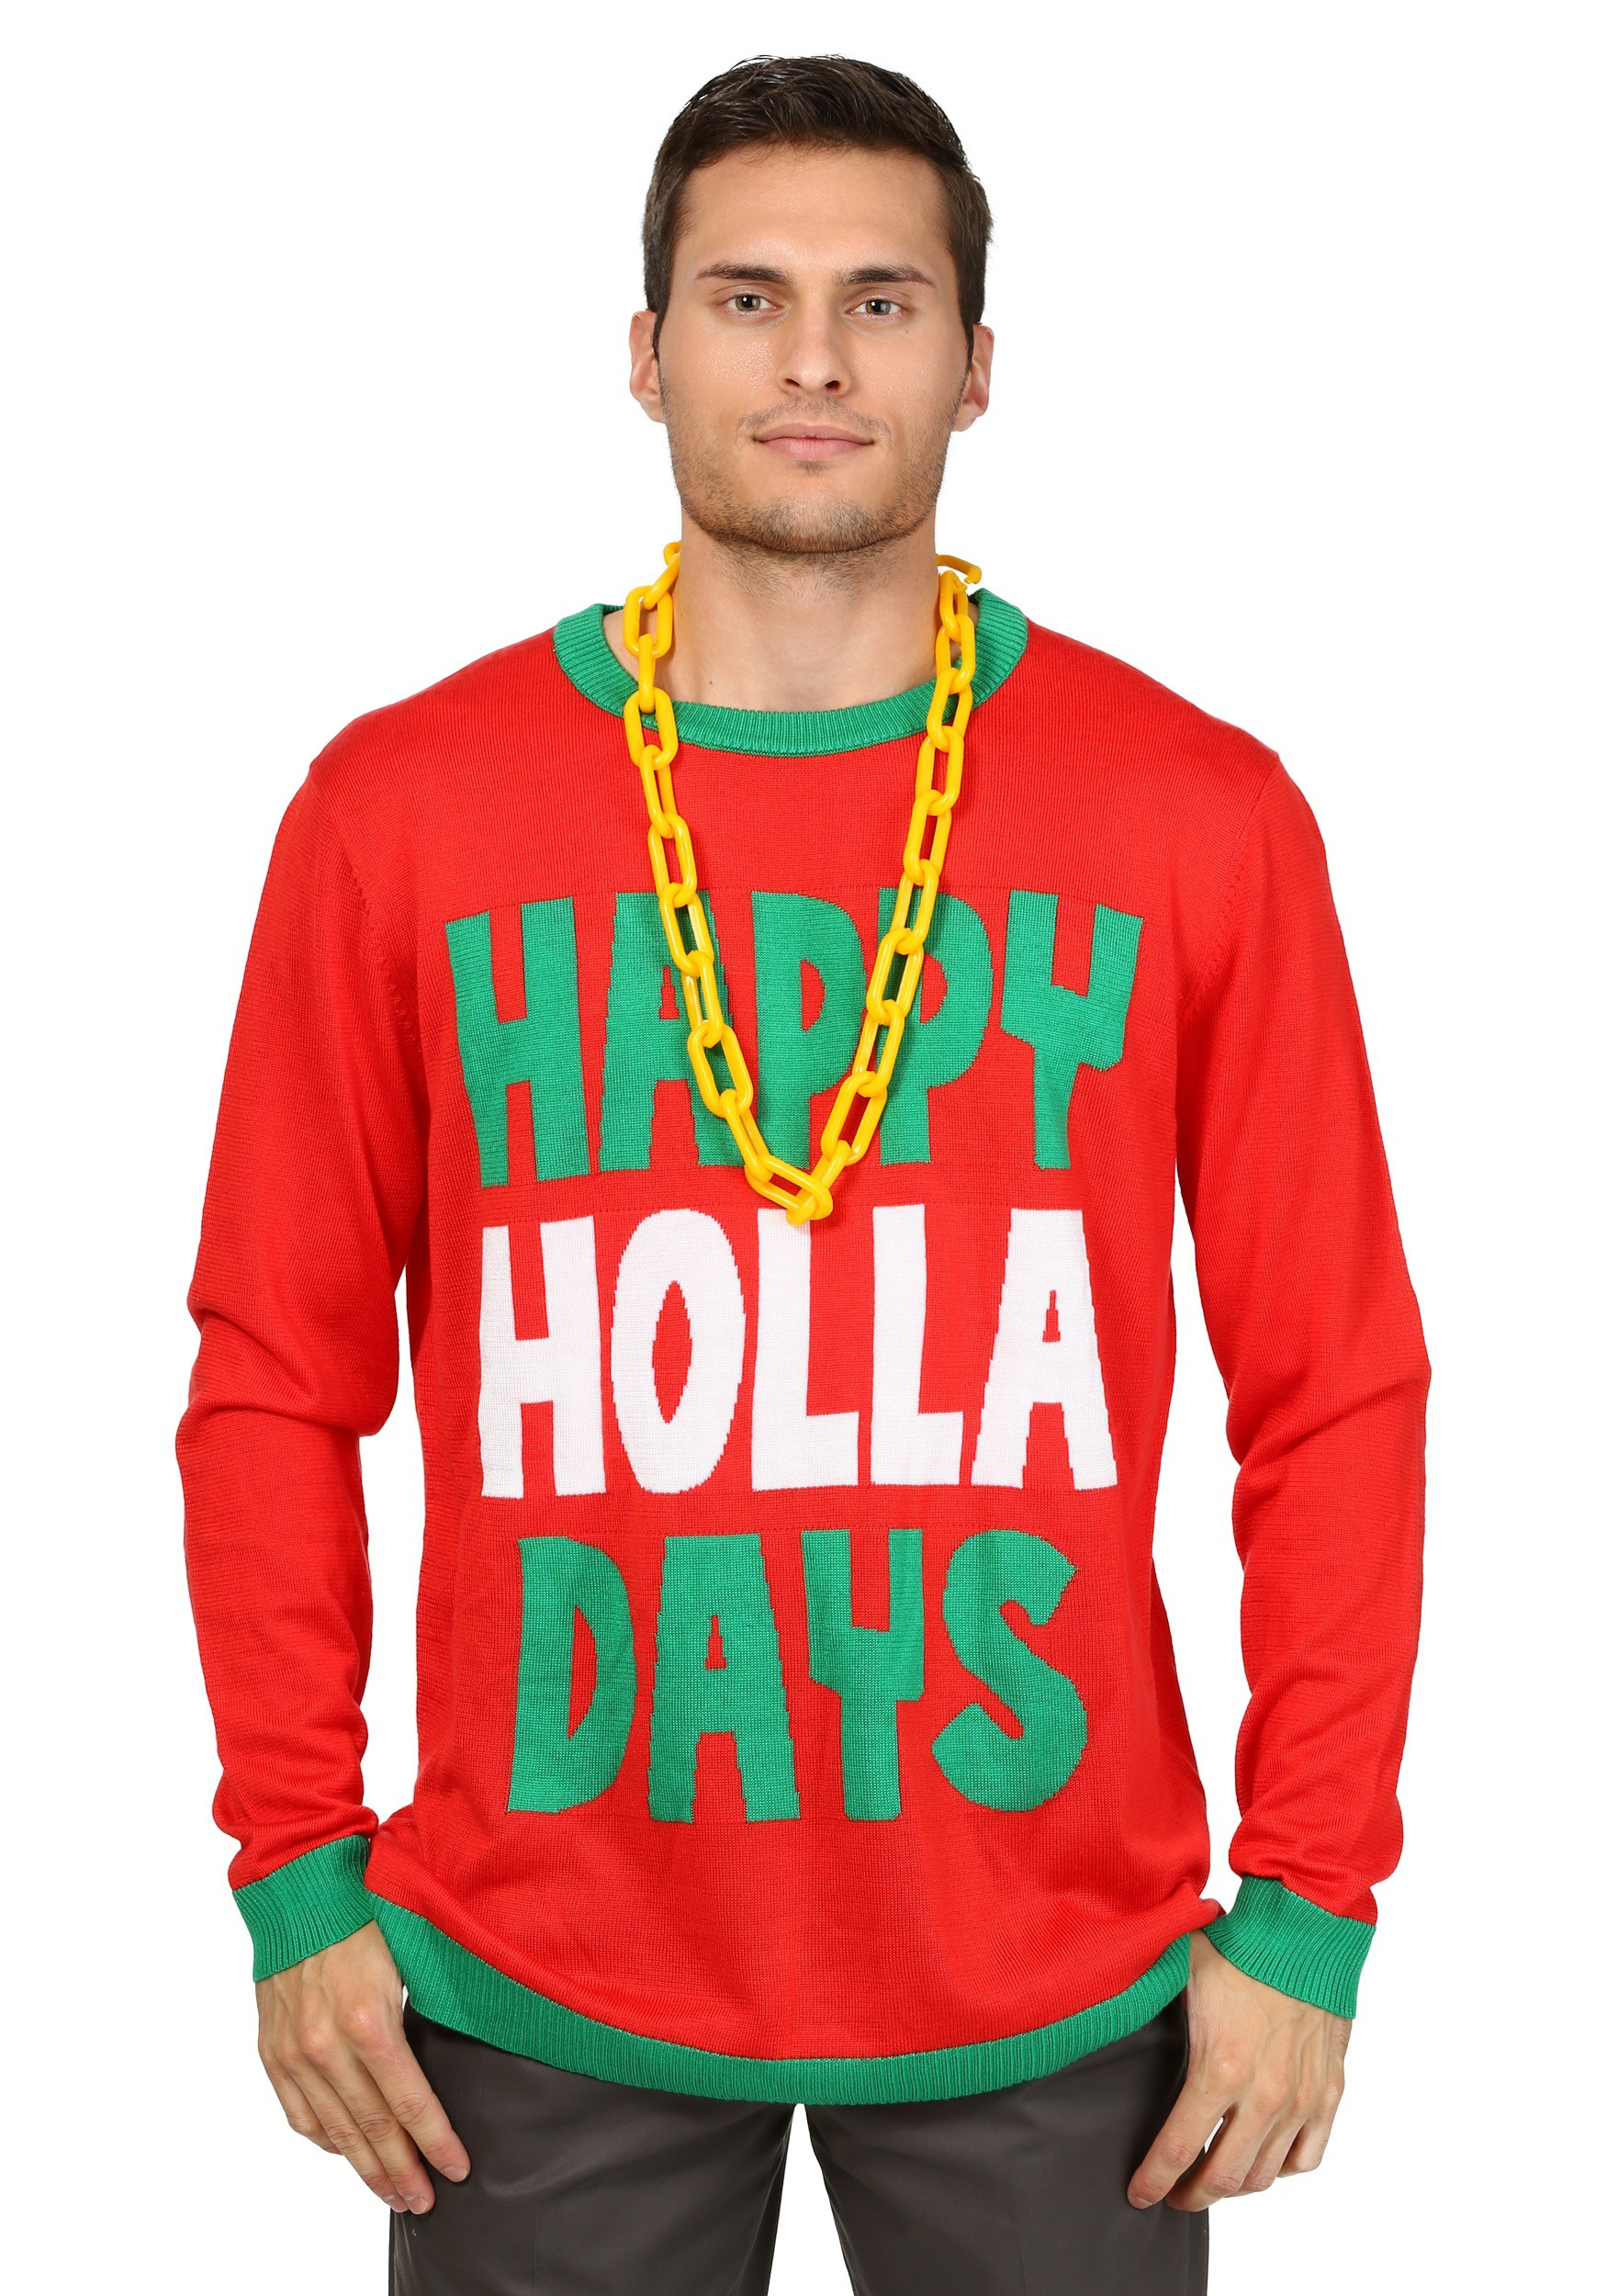 Happy Holla Days Ugly Christmas Sweater